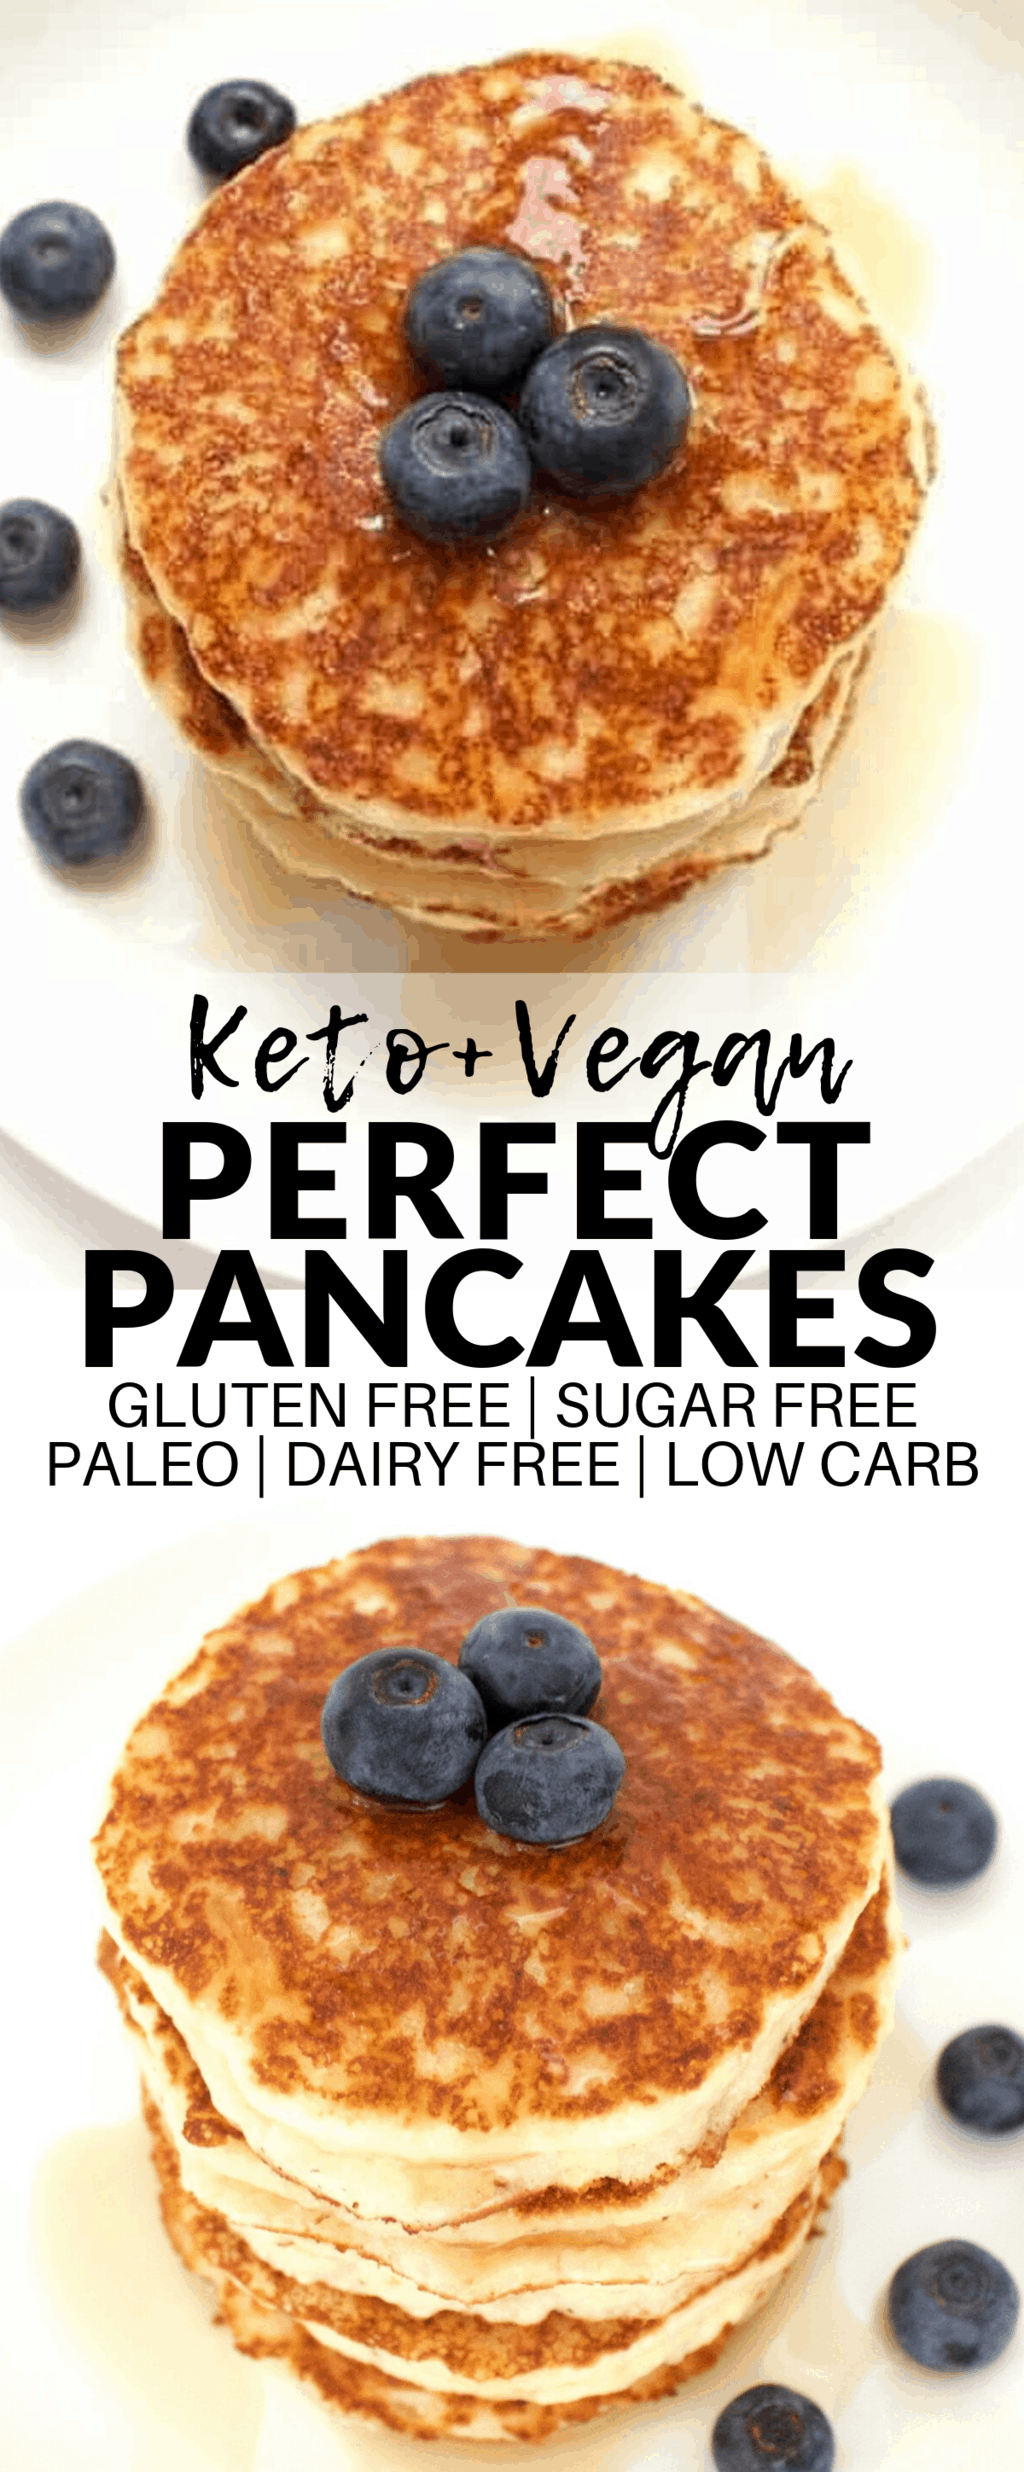 These Perfect Keto Vegan Pancakes are absolutely AMAZING! They're also gluten-free, dairy-free, paleo, and sugar-free. The perfect, healthy & delicious breakfast!